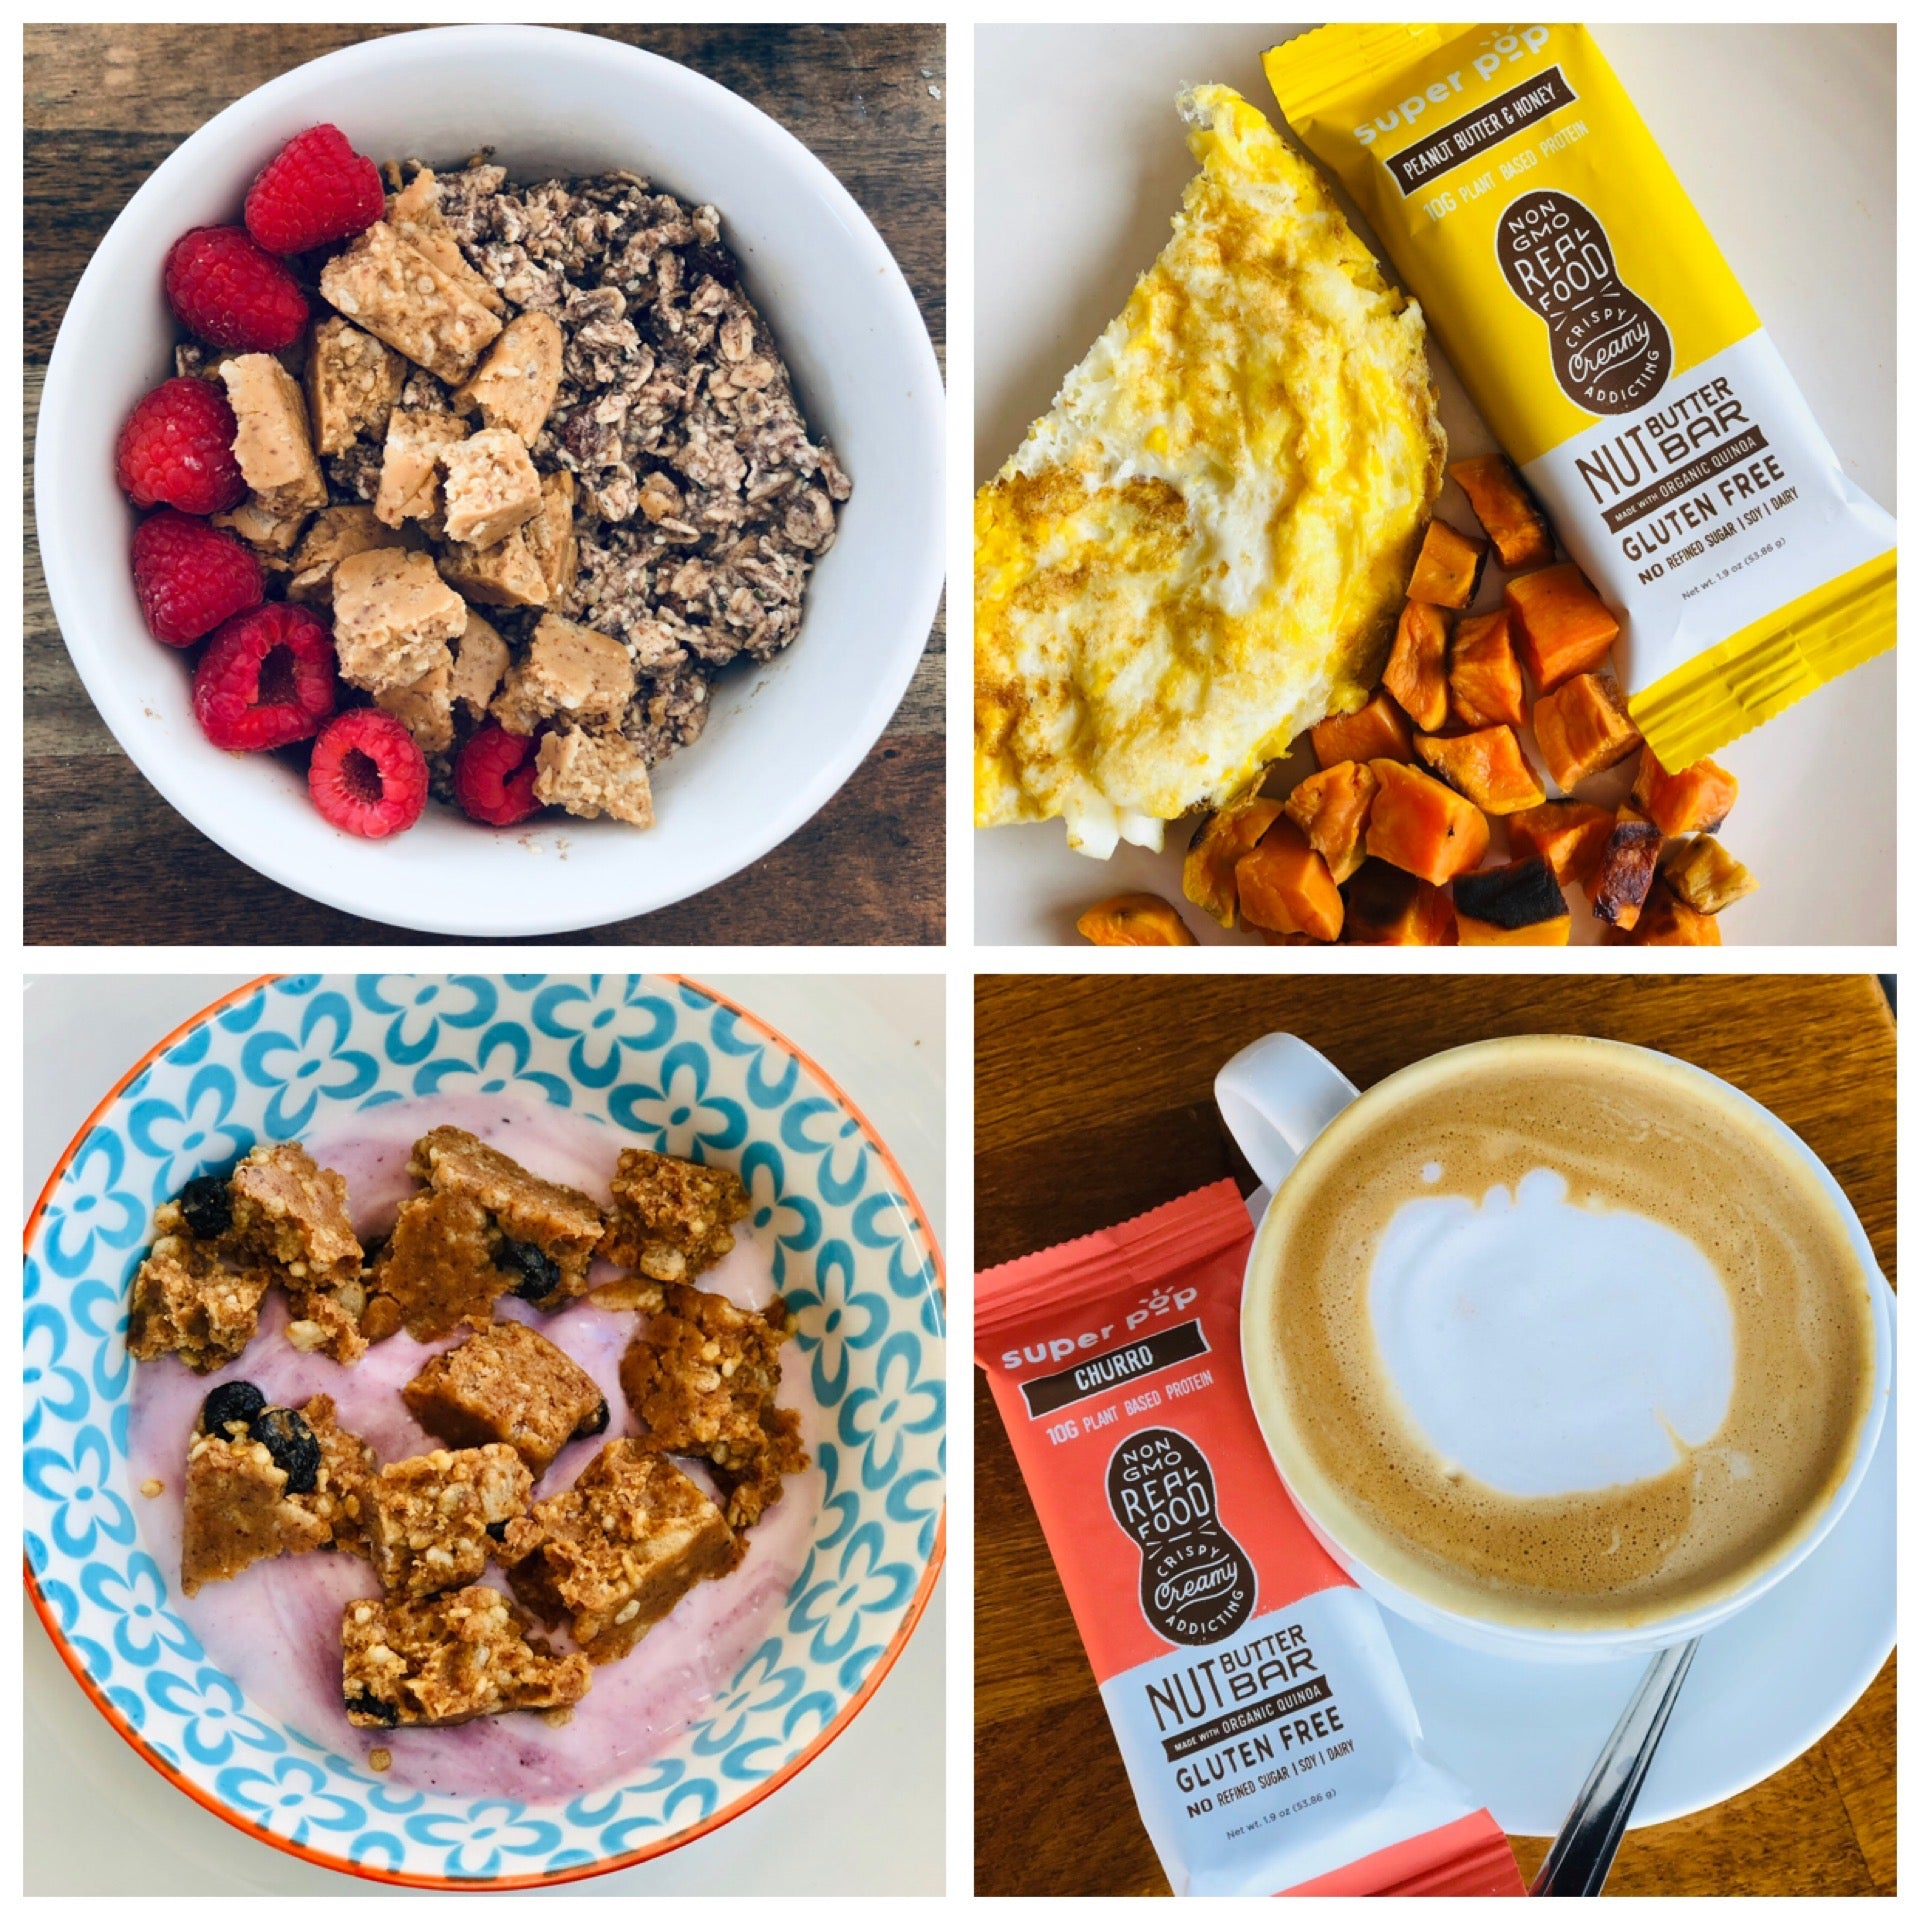 Super Pop Breakfast Morning Routine